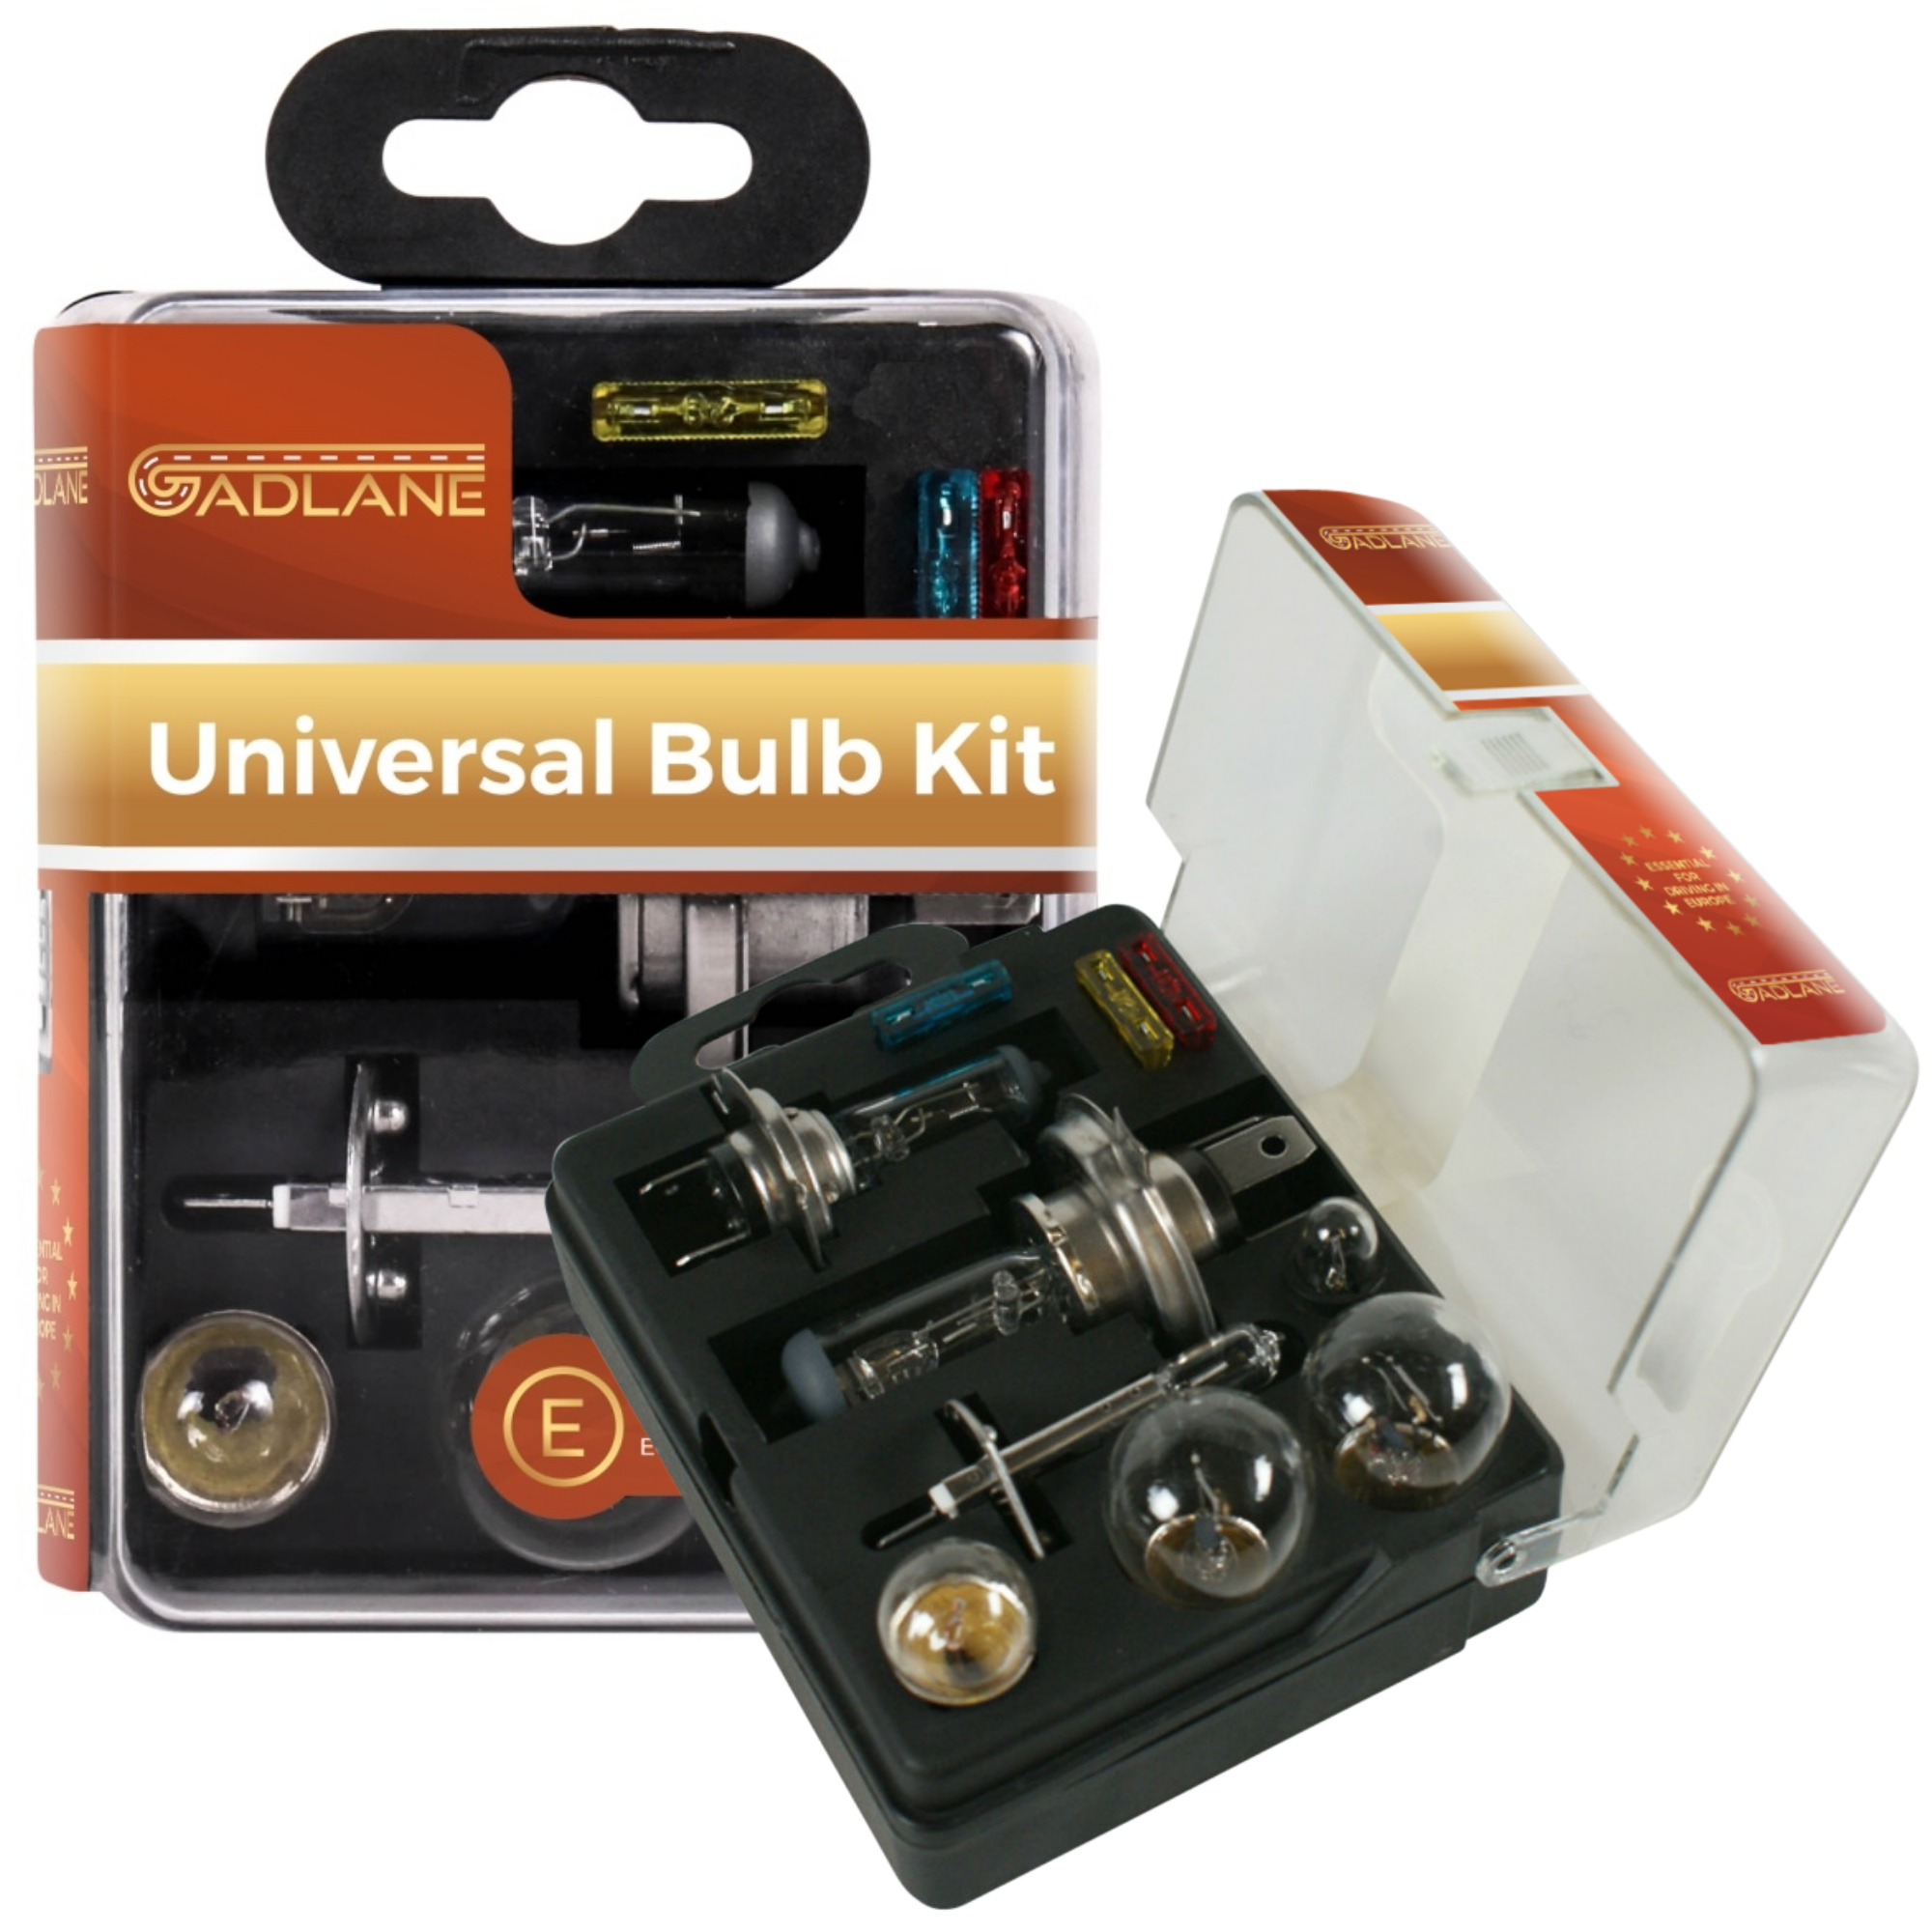 STATUS 10pc Universal Replacement Car Emergency Light Bulb Fuse Kit 477 H7 472 H4 448 H1 382 P21W 380 P21//5W 207 R5W 501 W5W